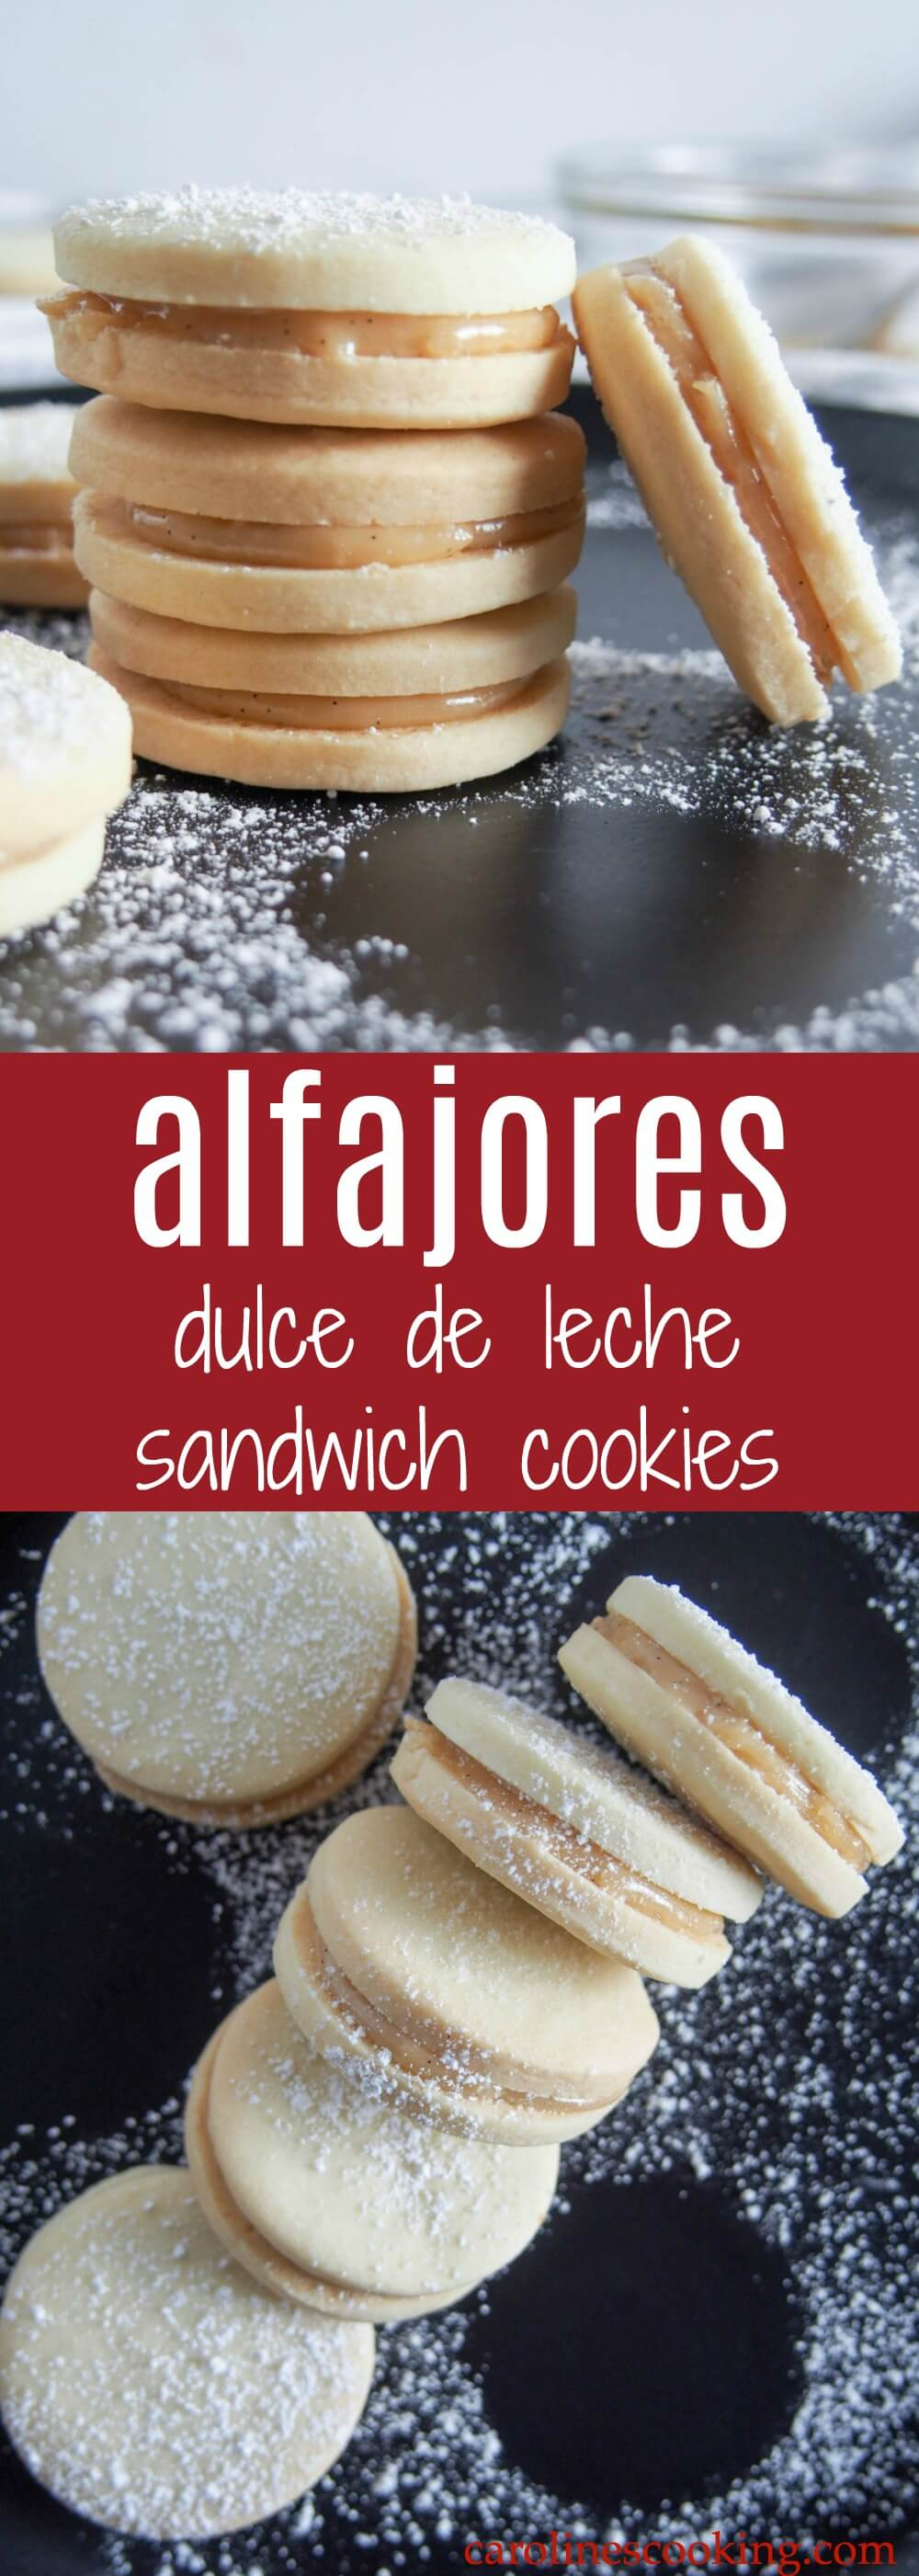 Alfajores (dulce de leche sandwich cookies) - Crumbly, tender cookies sandwiched together with dulce de leche - alfajores are the kind of cookies that almost anyone will be tempted by. Welcome to your next cookie plate must-have. #cookie #dulcedeleche